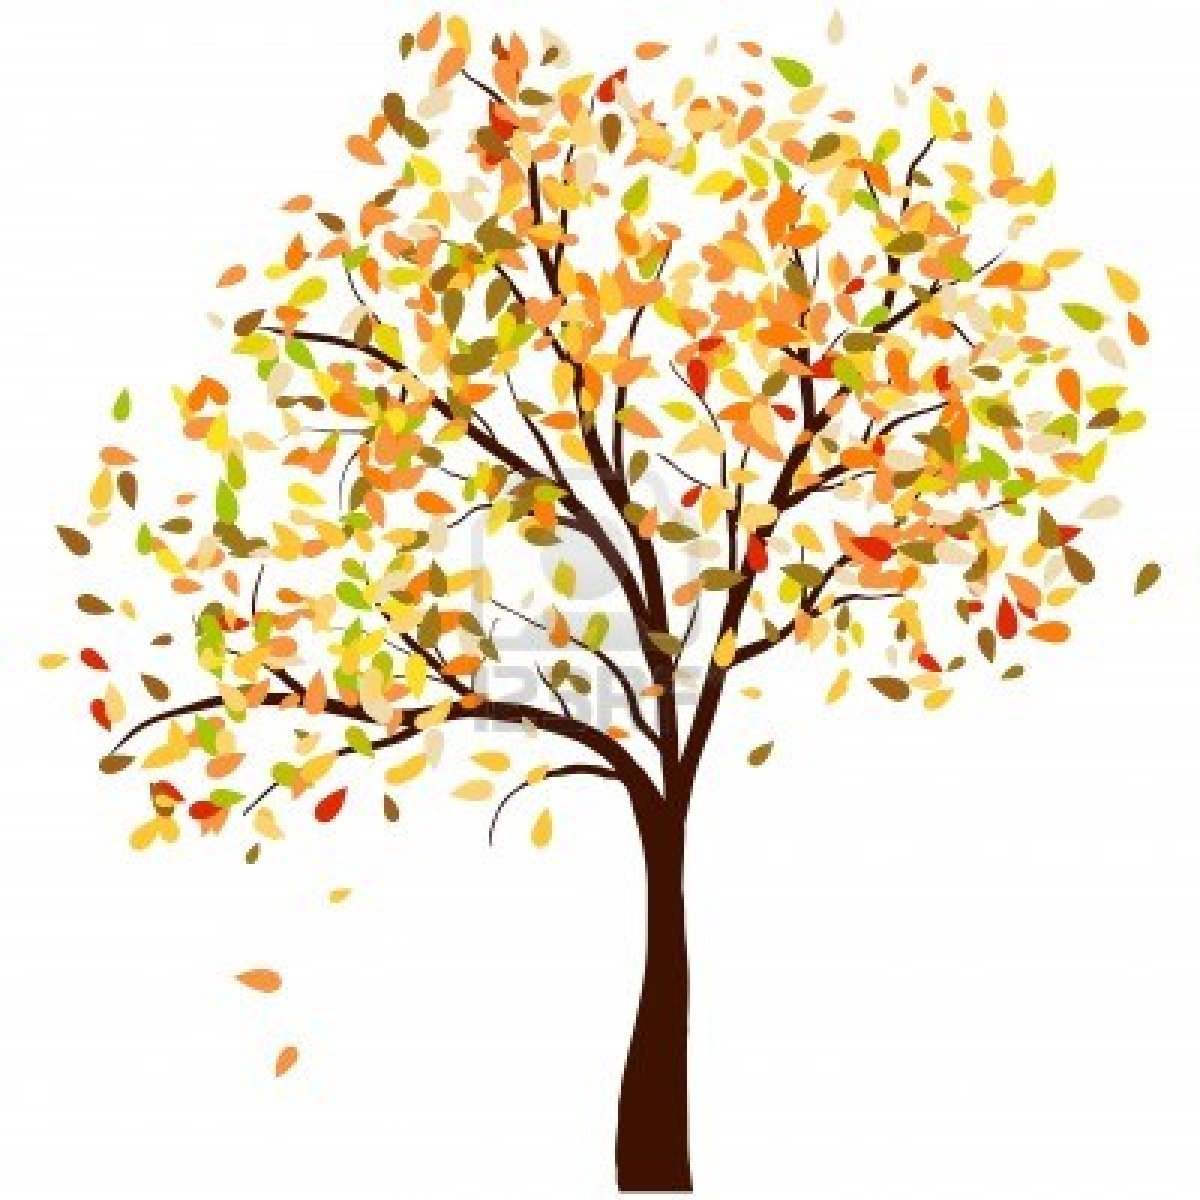 autumn trees and leaves clipart autumn trees background.